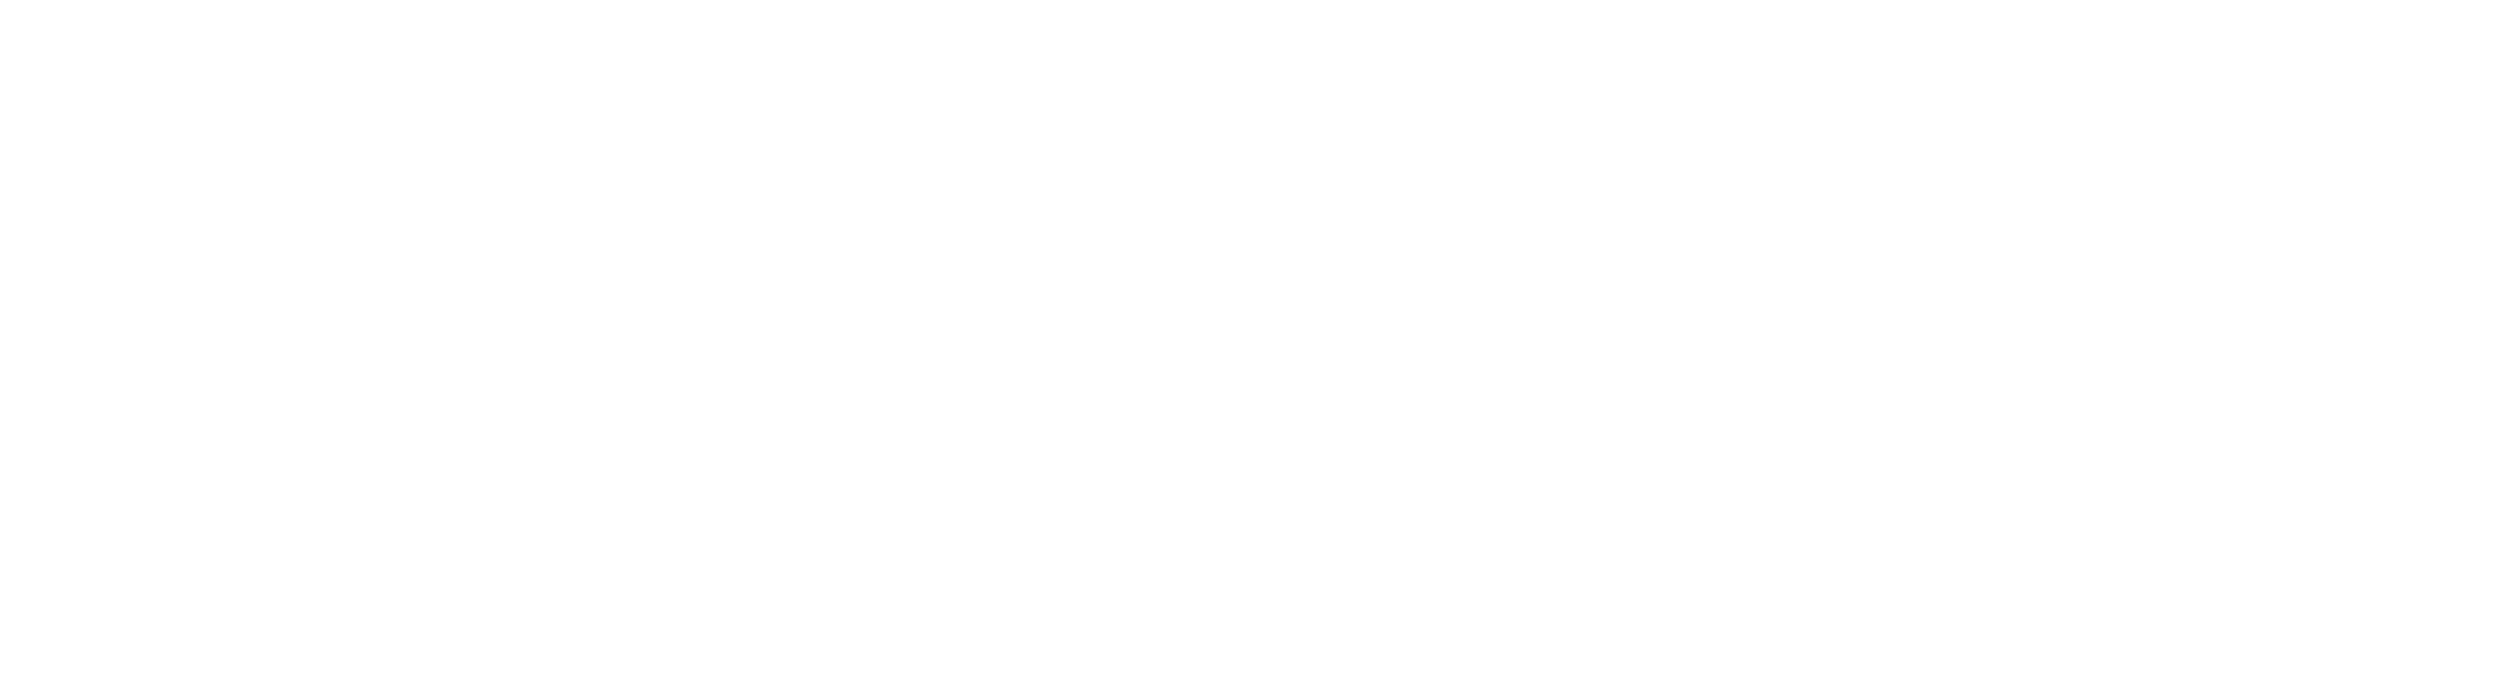 Australian_Fashion_Council